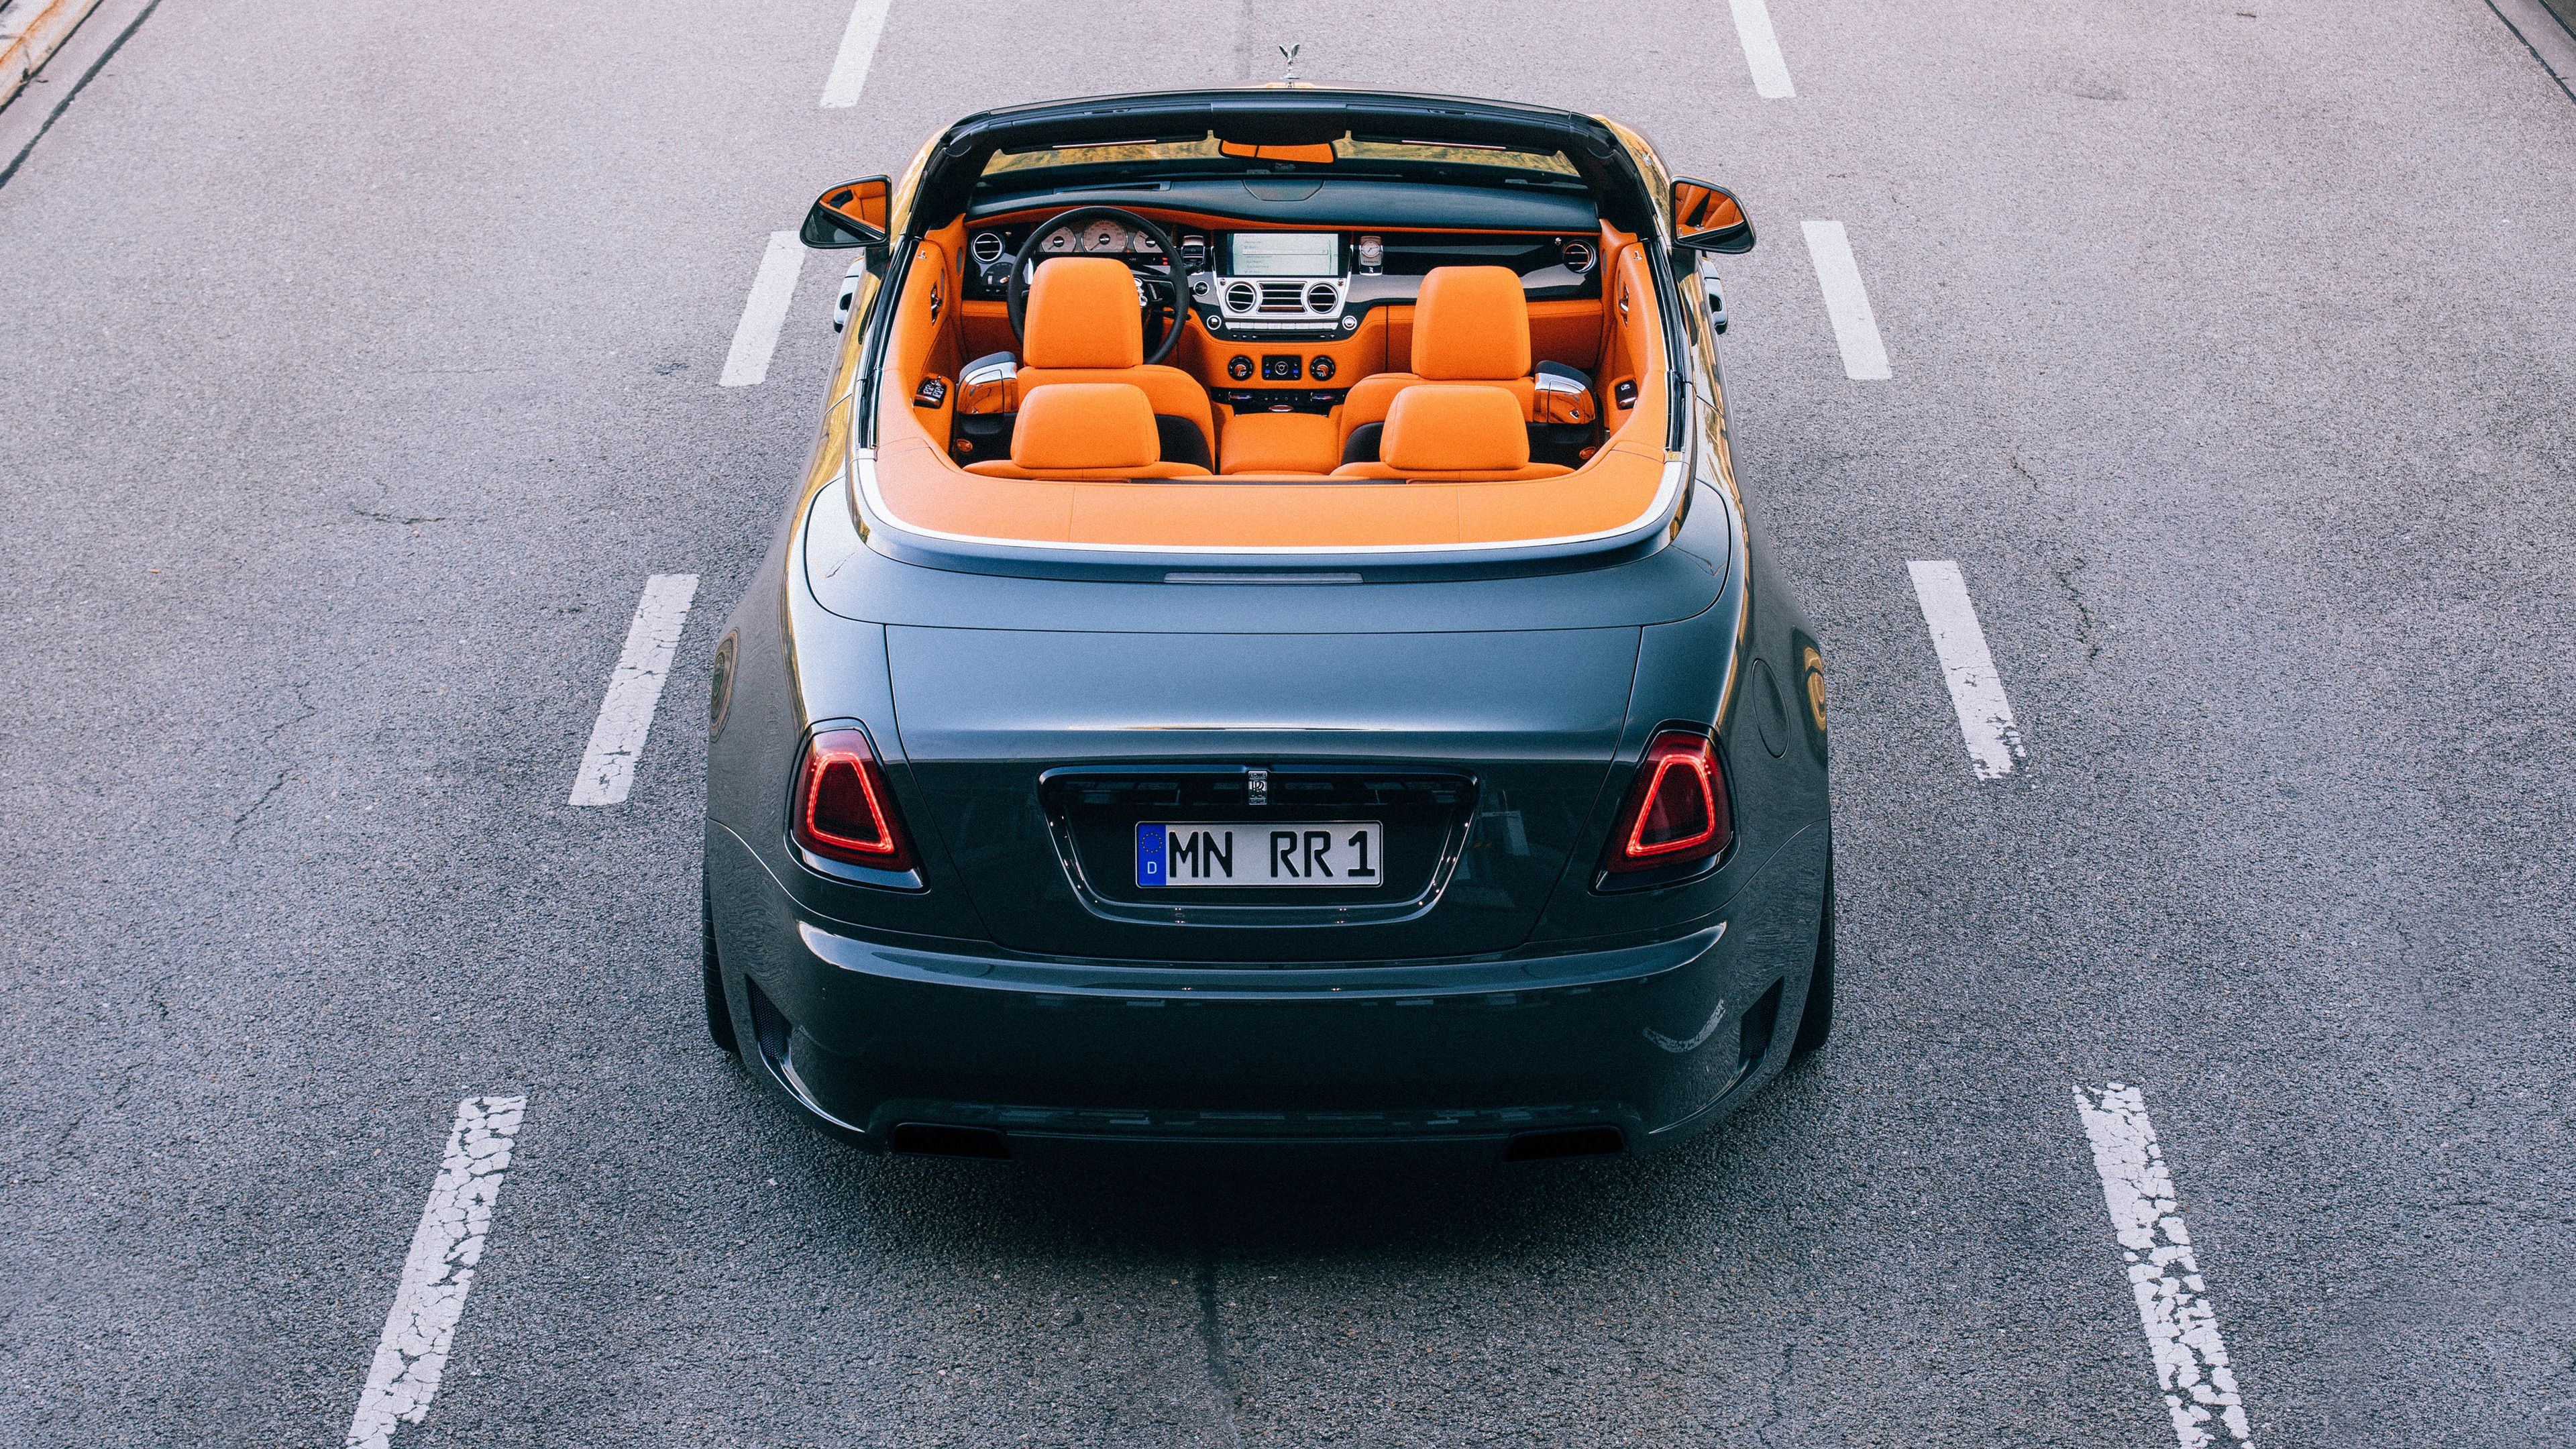 Spofec Rolls Royce Dawn Overdose 2017 Rear rolls royce wallpapers, rolls royce d…